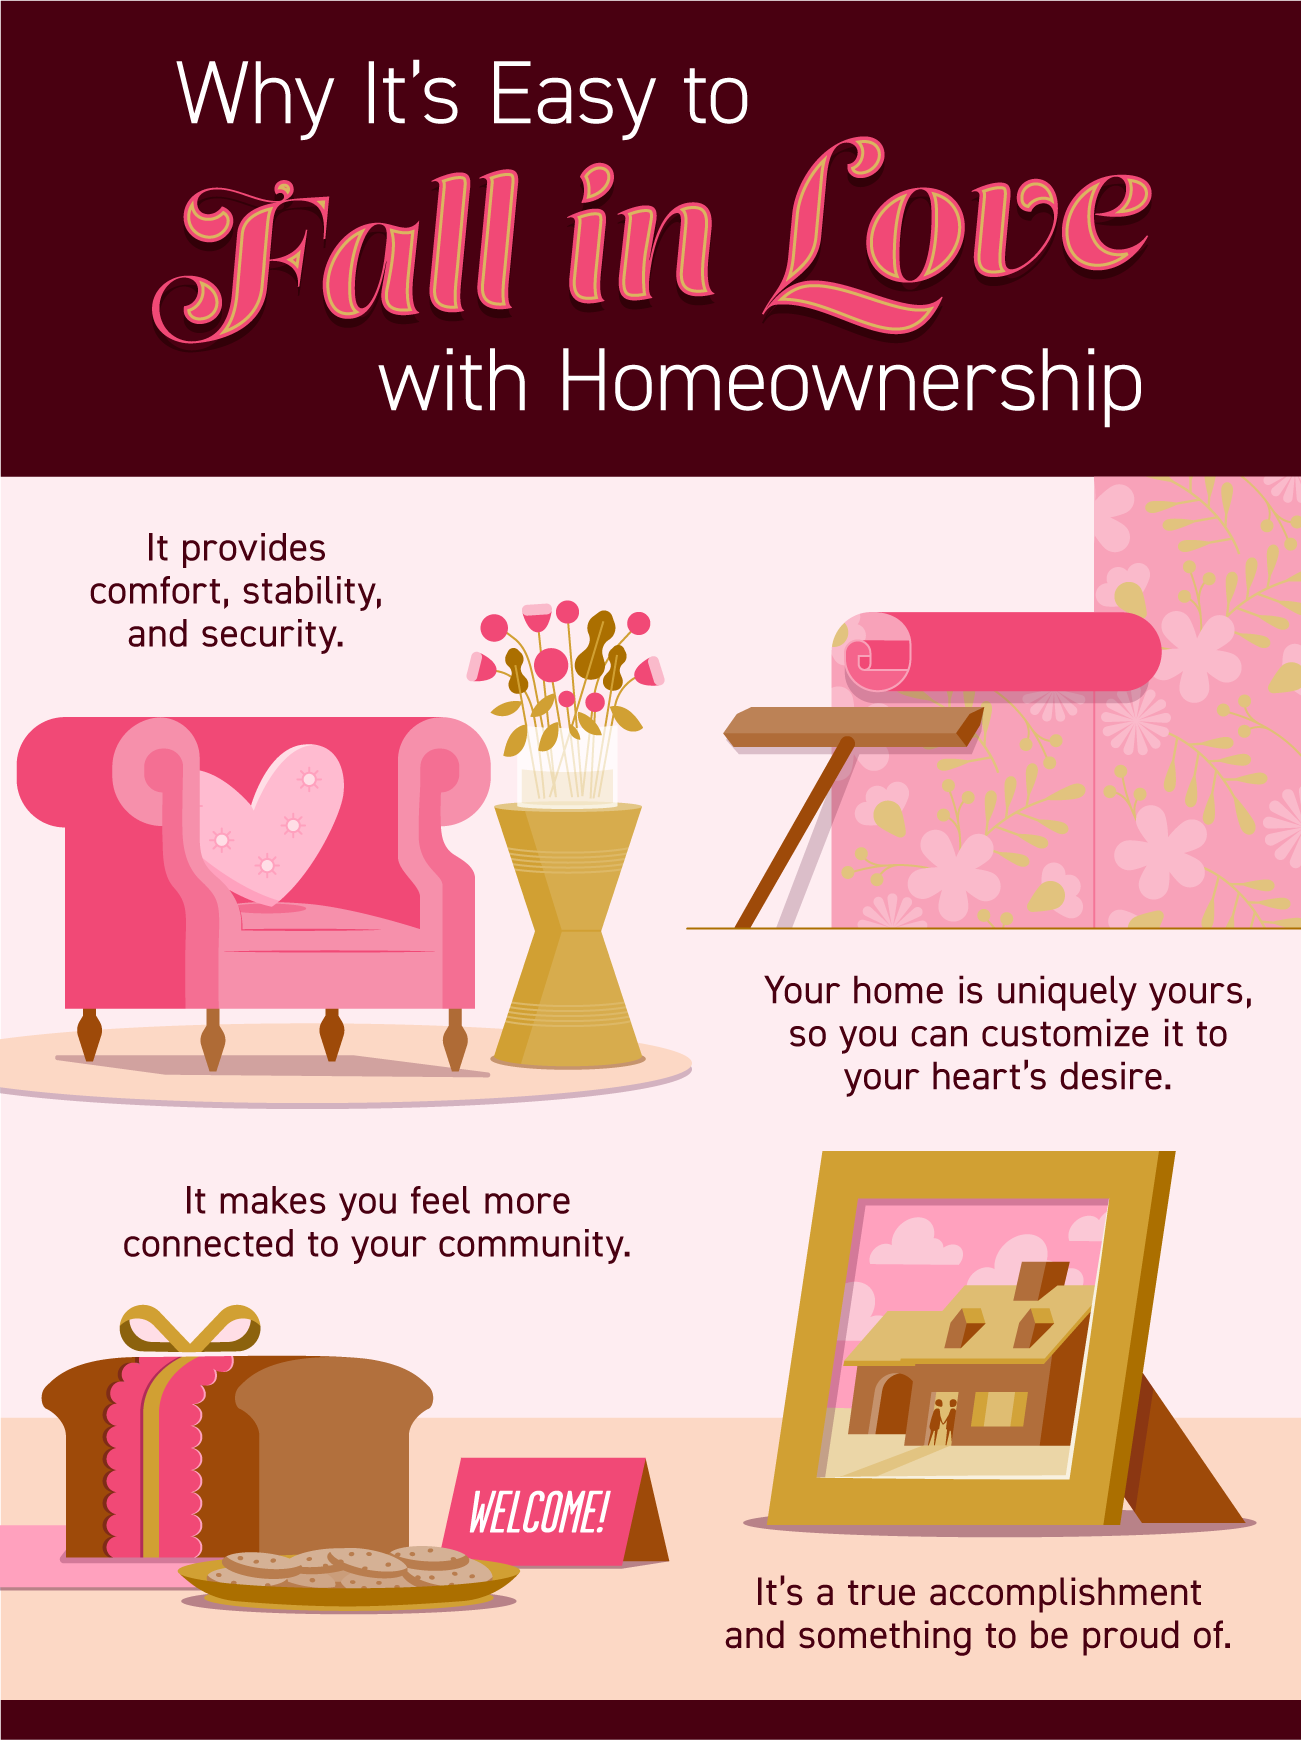 Why It's Easy to Fall in Love with Homeownership